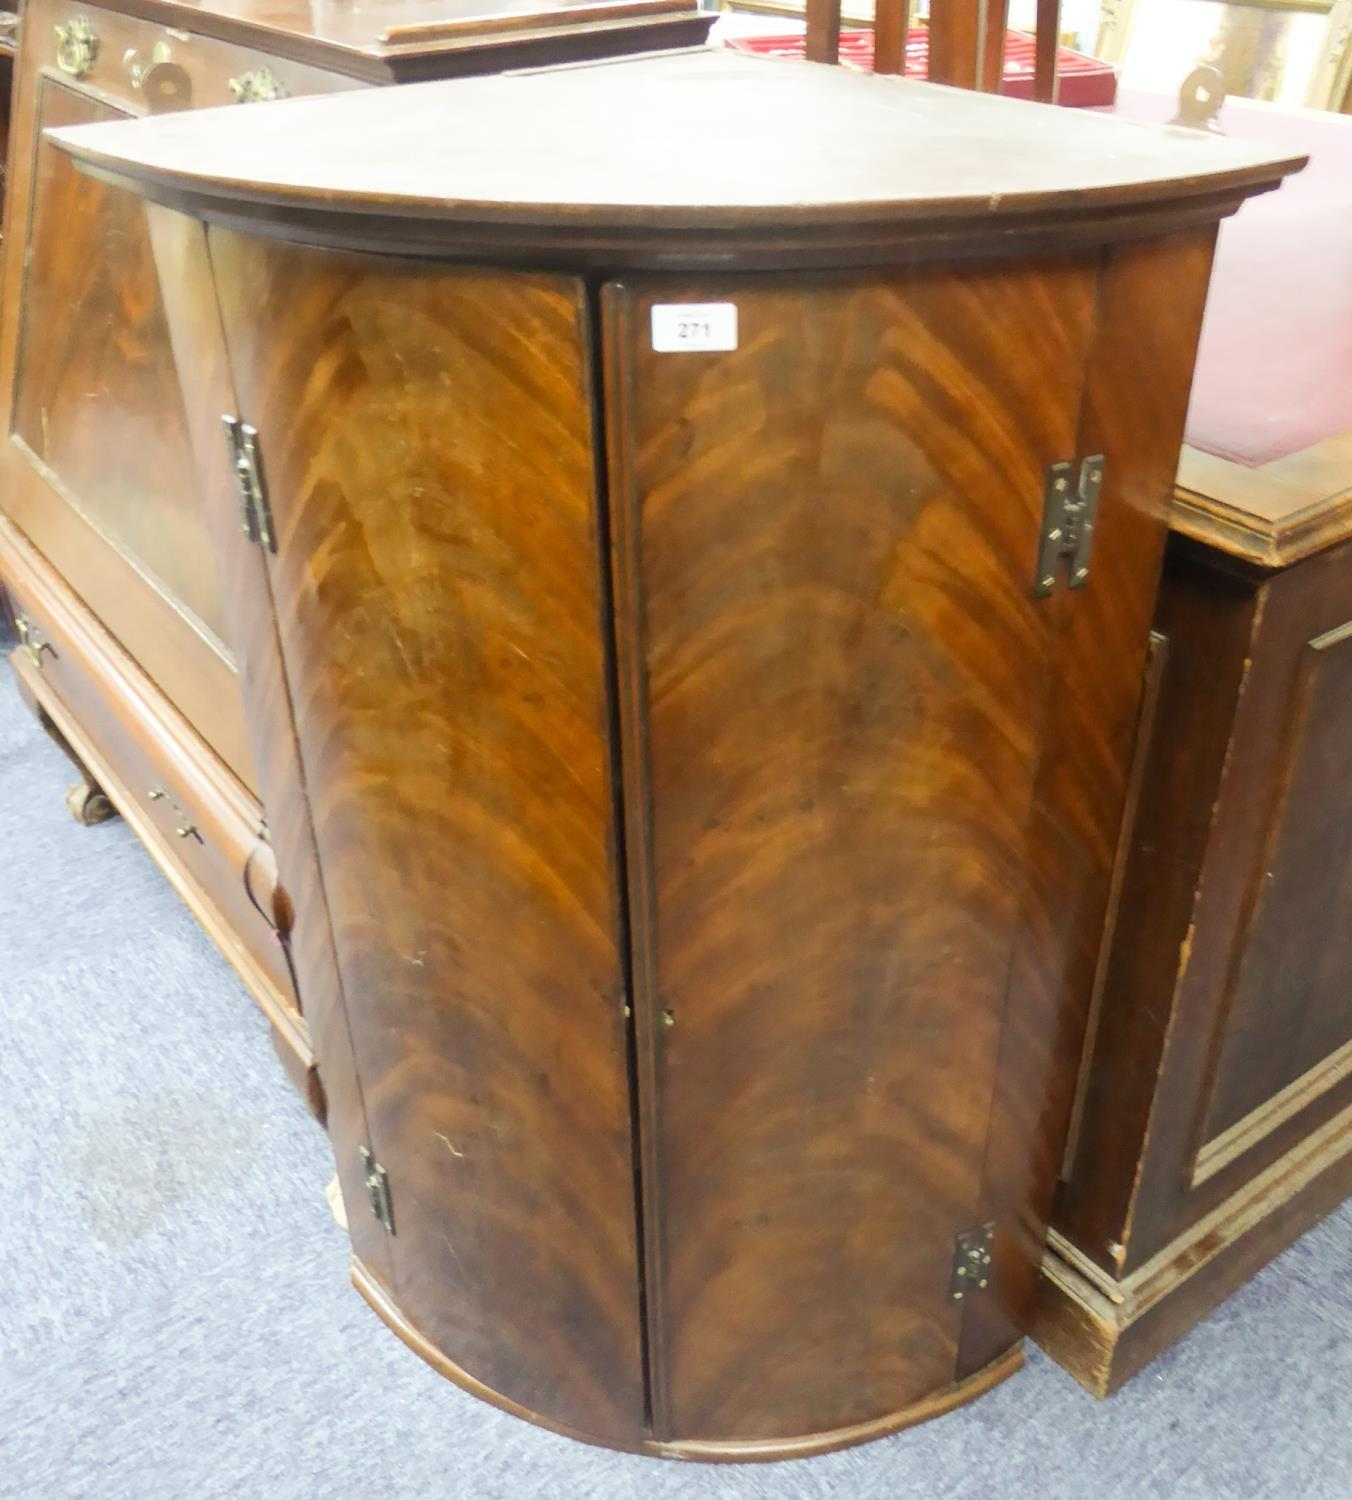 Lot 50 - GEORGIAN FLAME CUT MAHOGANY BOW FRONTED CORNER CUPBOARD, of typical form with exposed brass H hinges